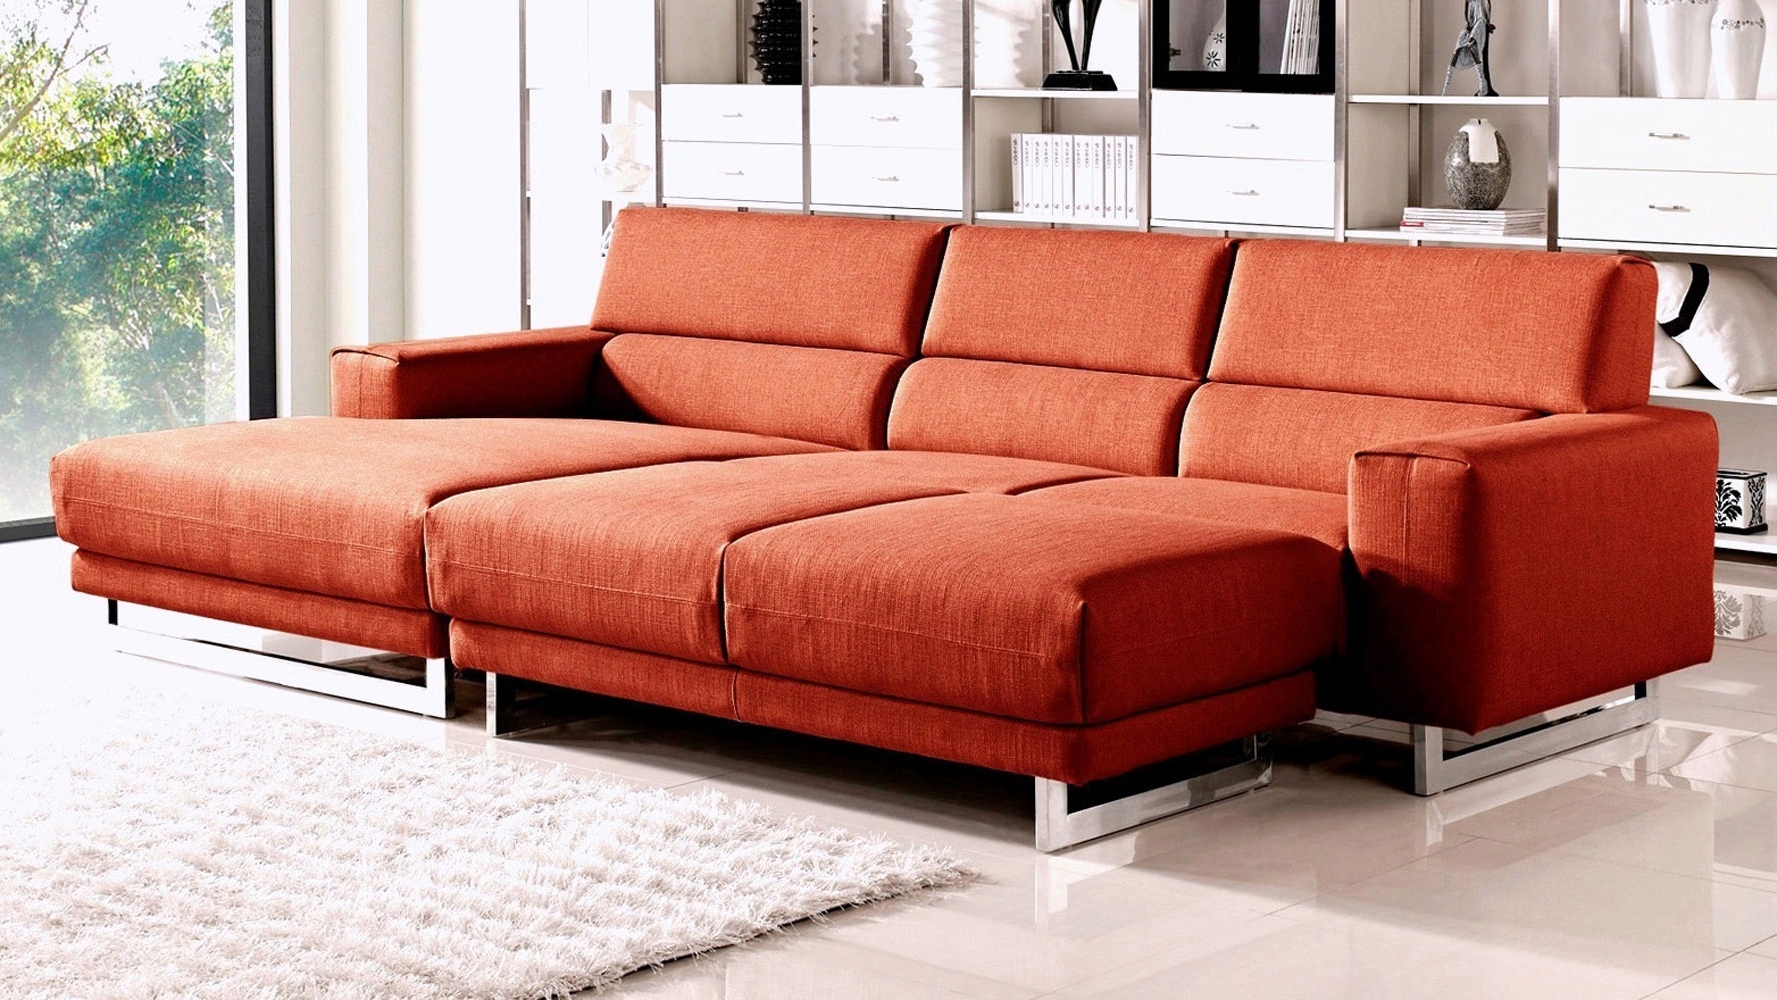 Ottoman Sleeper Sofa, Popular Comfortable Sectional Sofas Fabric Within Trendy Sectional Sleeper Sofas With Ottoman (View 8 of 15)